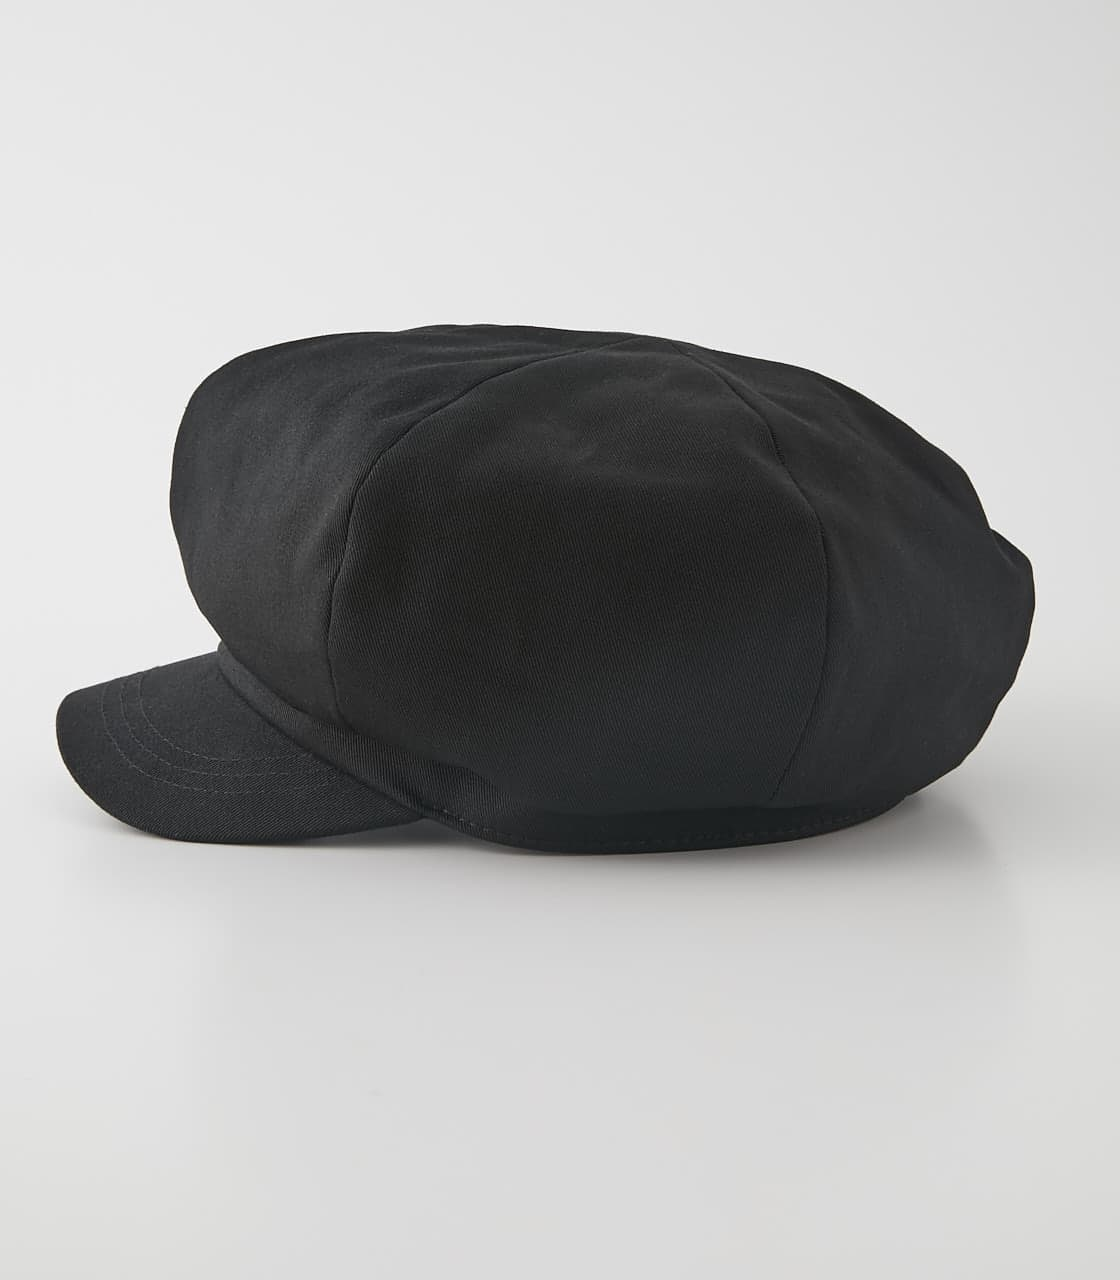 COTTON TWILL CASQUETTE/コットンツイルキャスケット 詳細画像 BLK 5